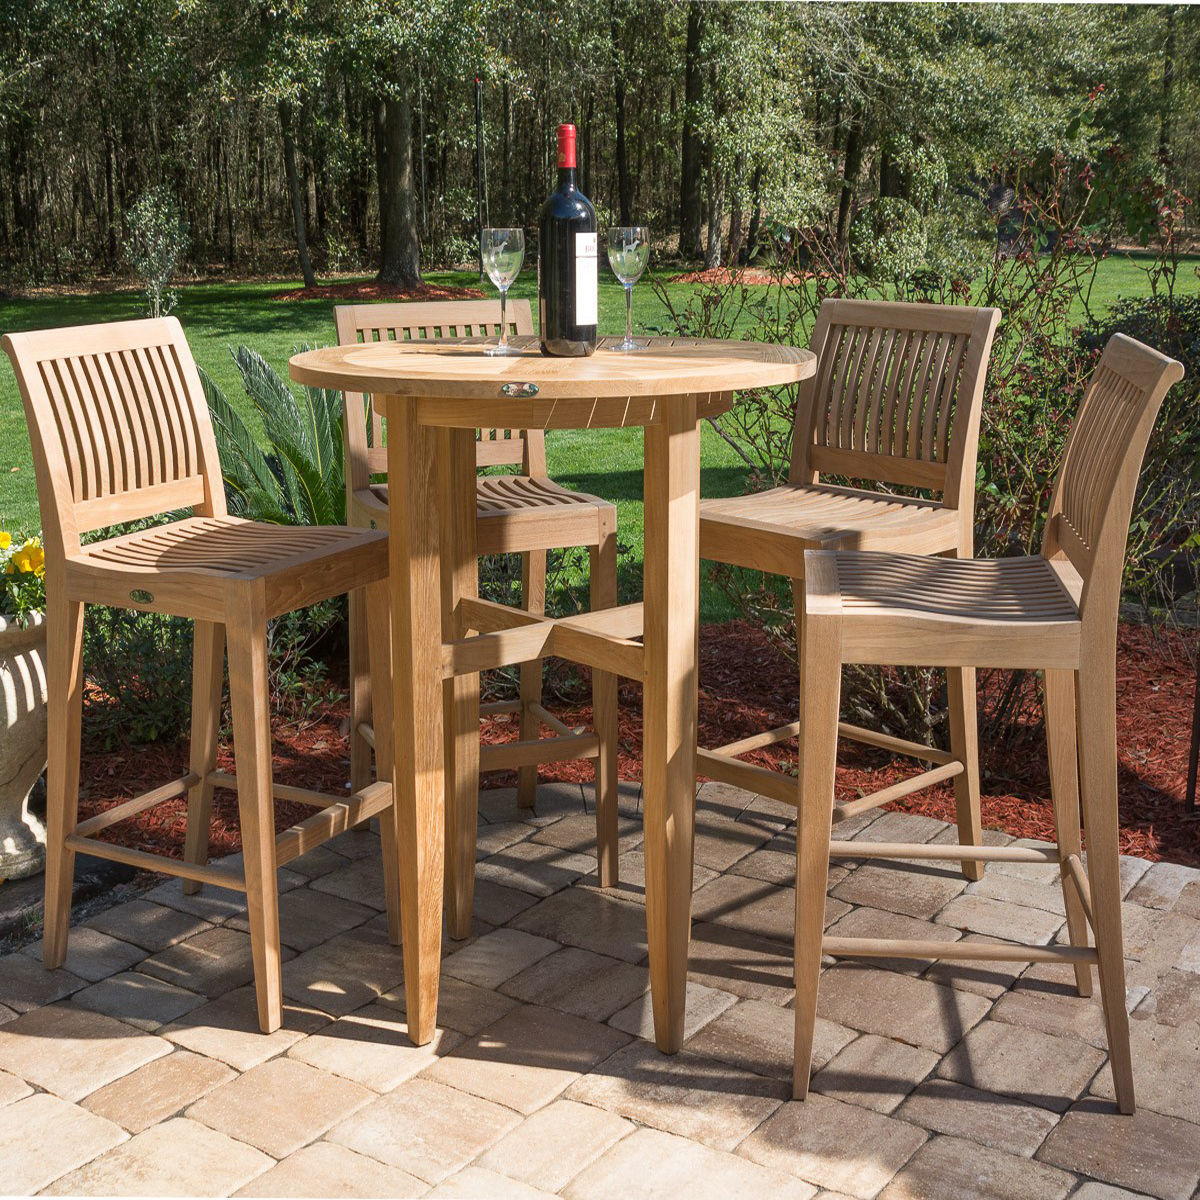 Laguna Teak Bar Stool And Table Set Westminster Teak